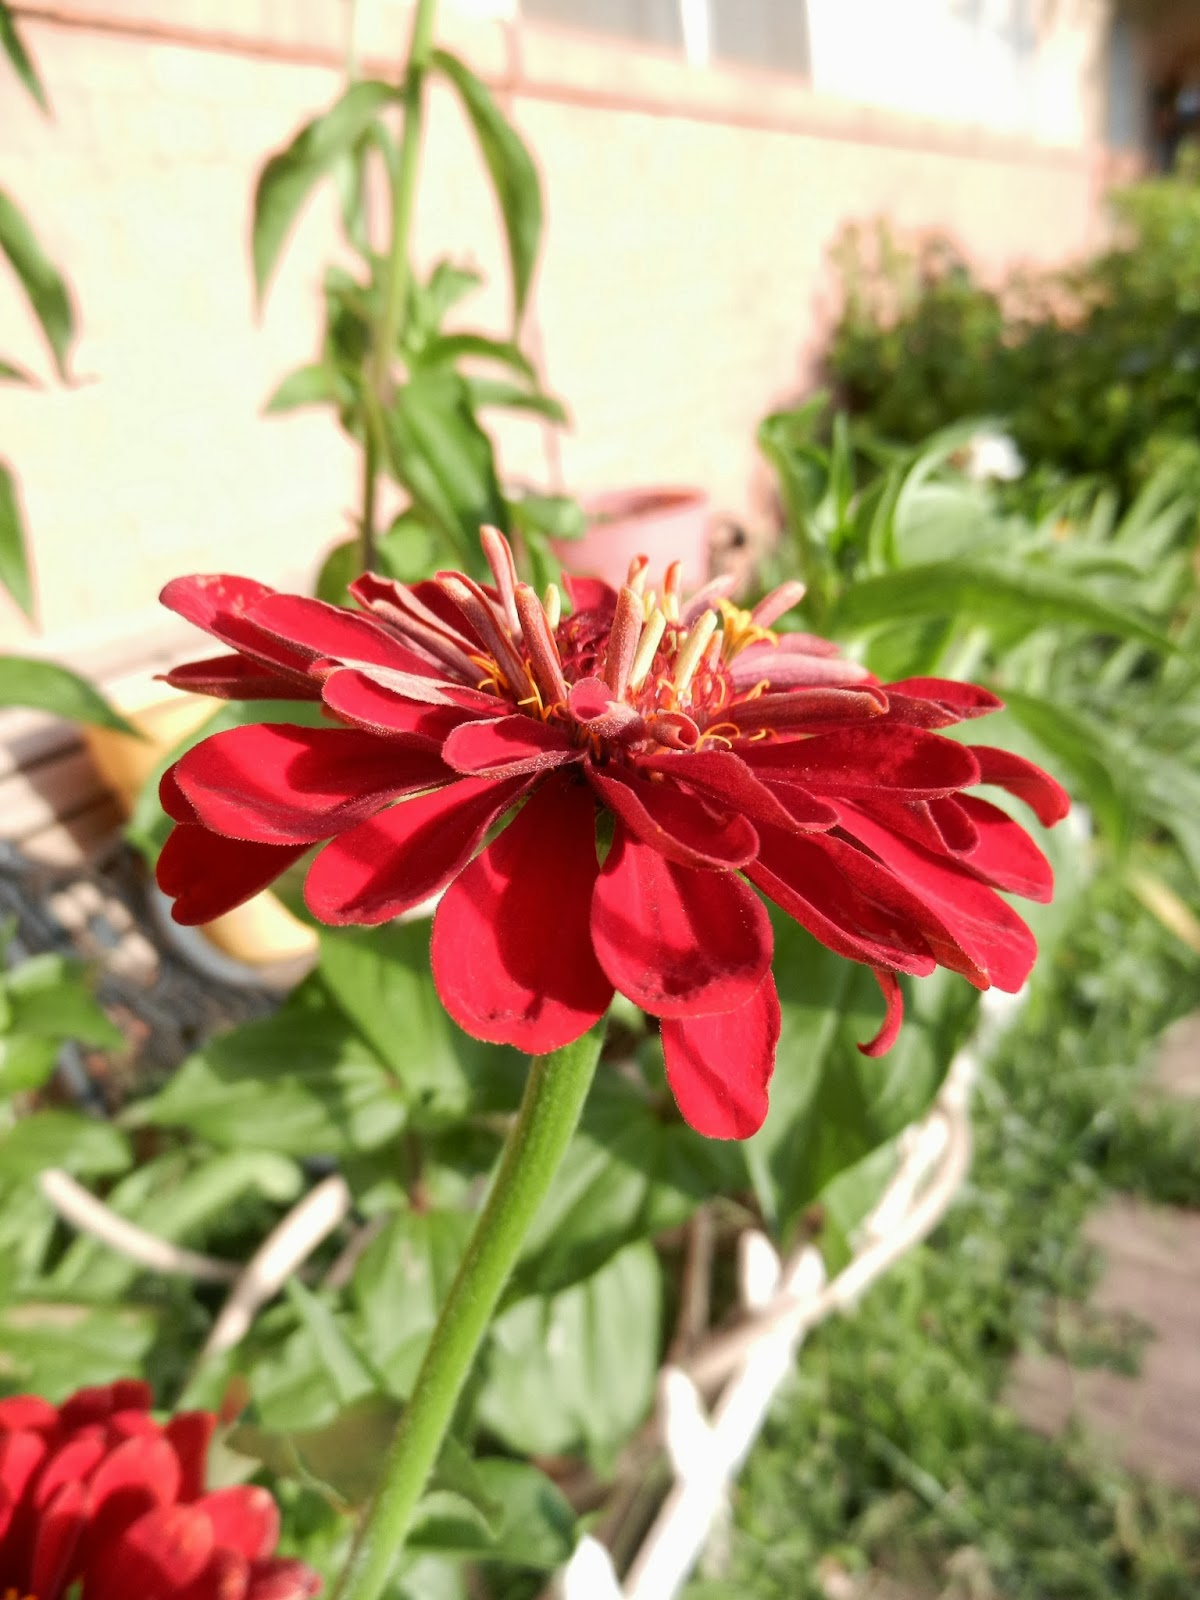 autumn zinnias picture